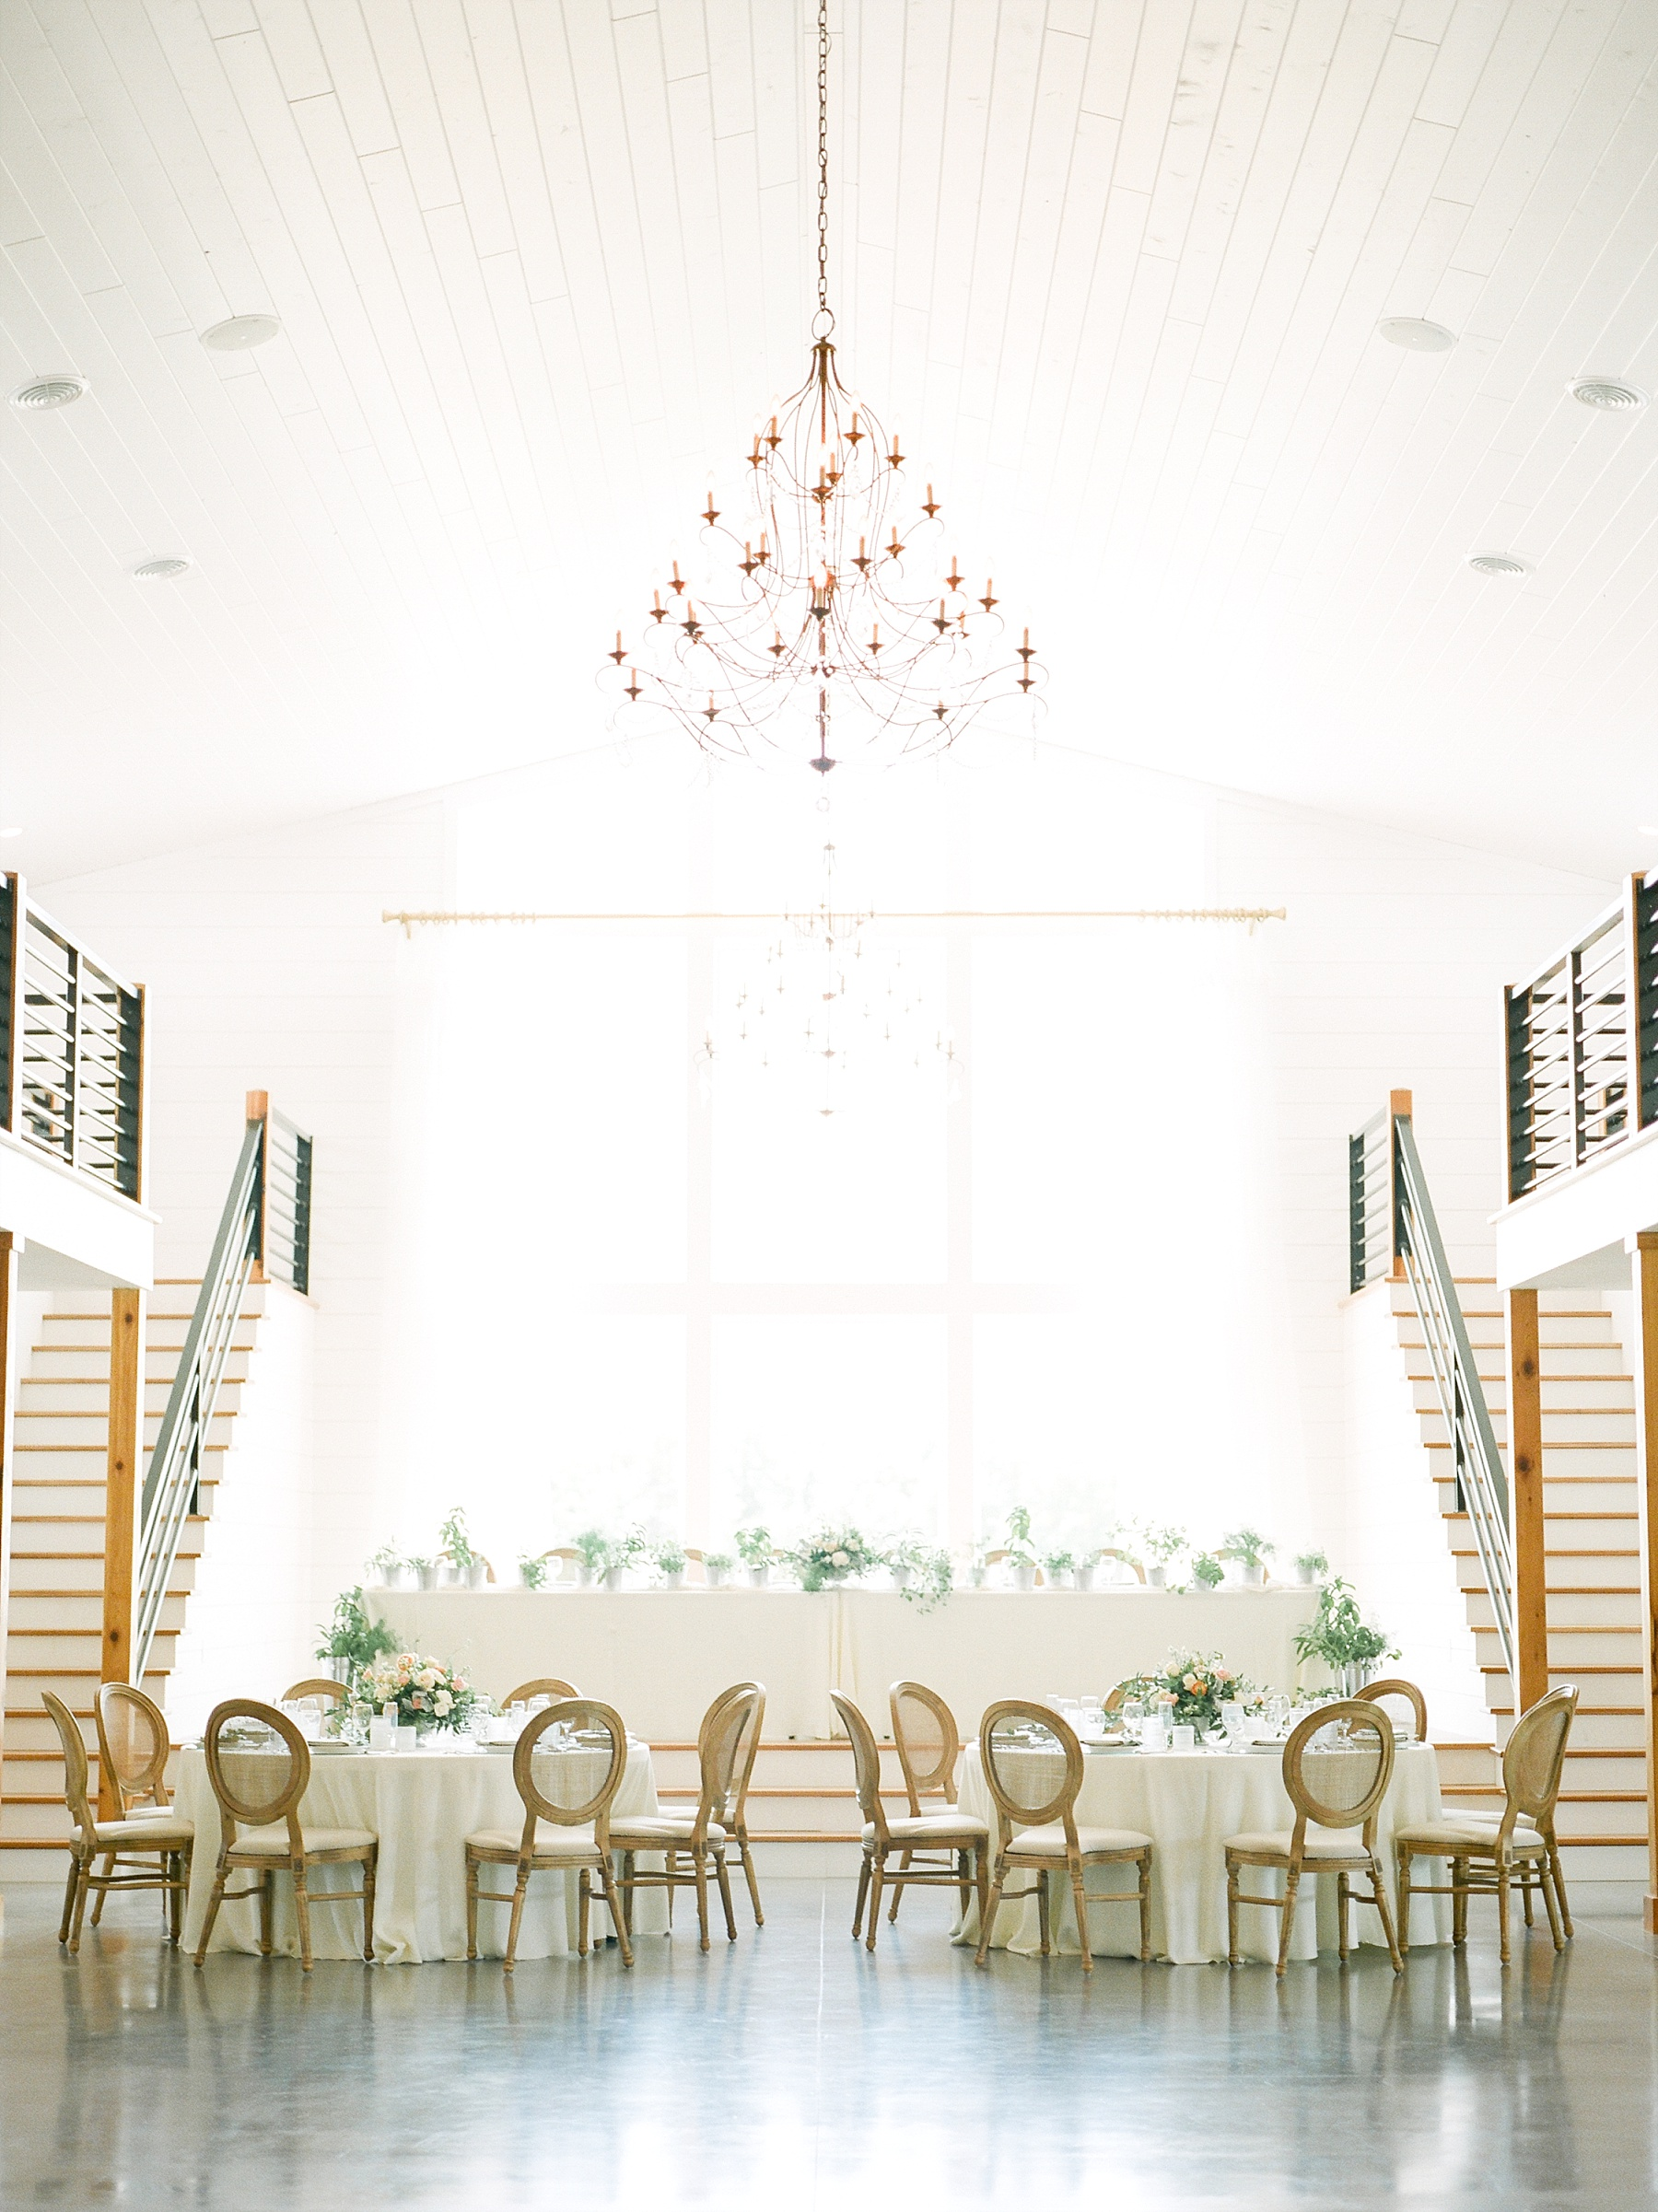 Textural Organic Wedding in All White Venue by Kelsi Kliethermes Wedding Photographer - Missouri, Midwest, and Destinations_0082.jpg